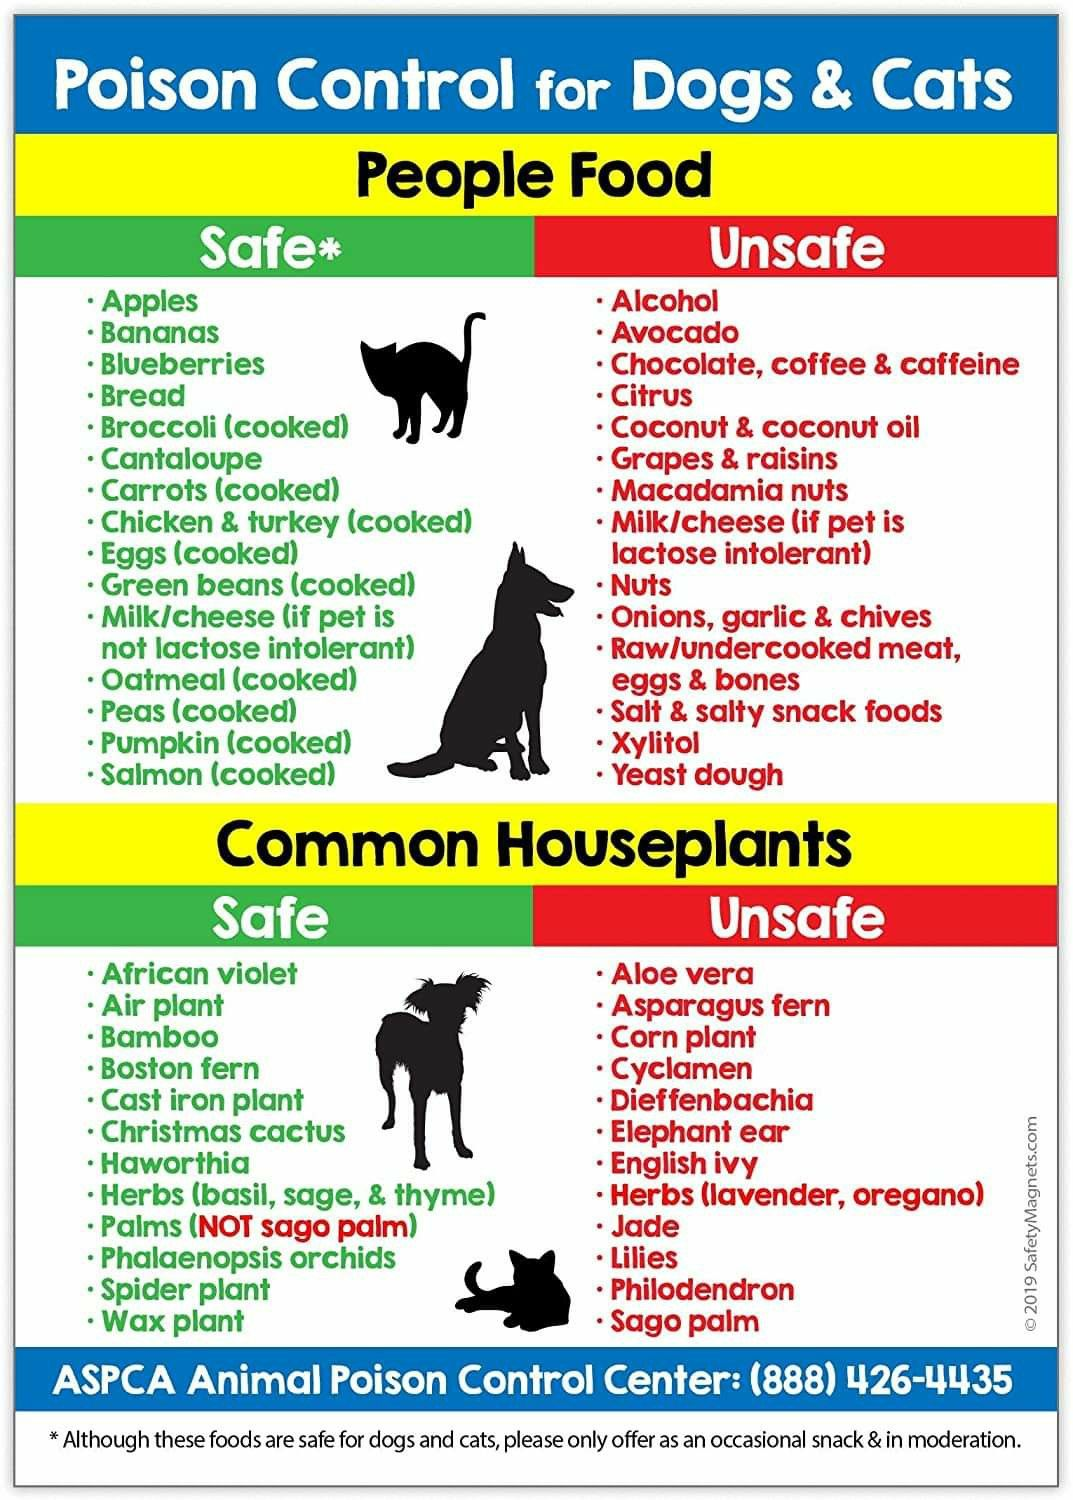 Pin By Cynthia Nicks On Cat Care Facts On Health And Behaviors Body Language News Info Etc Toxic Plants For Cats Poison Control For Dogs Dog Cat